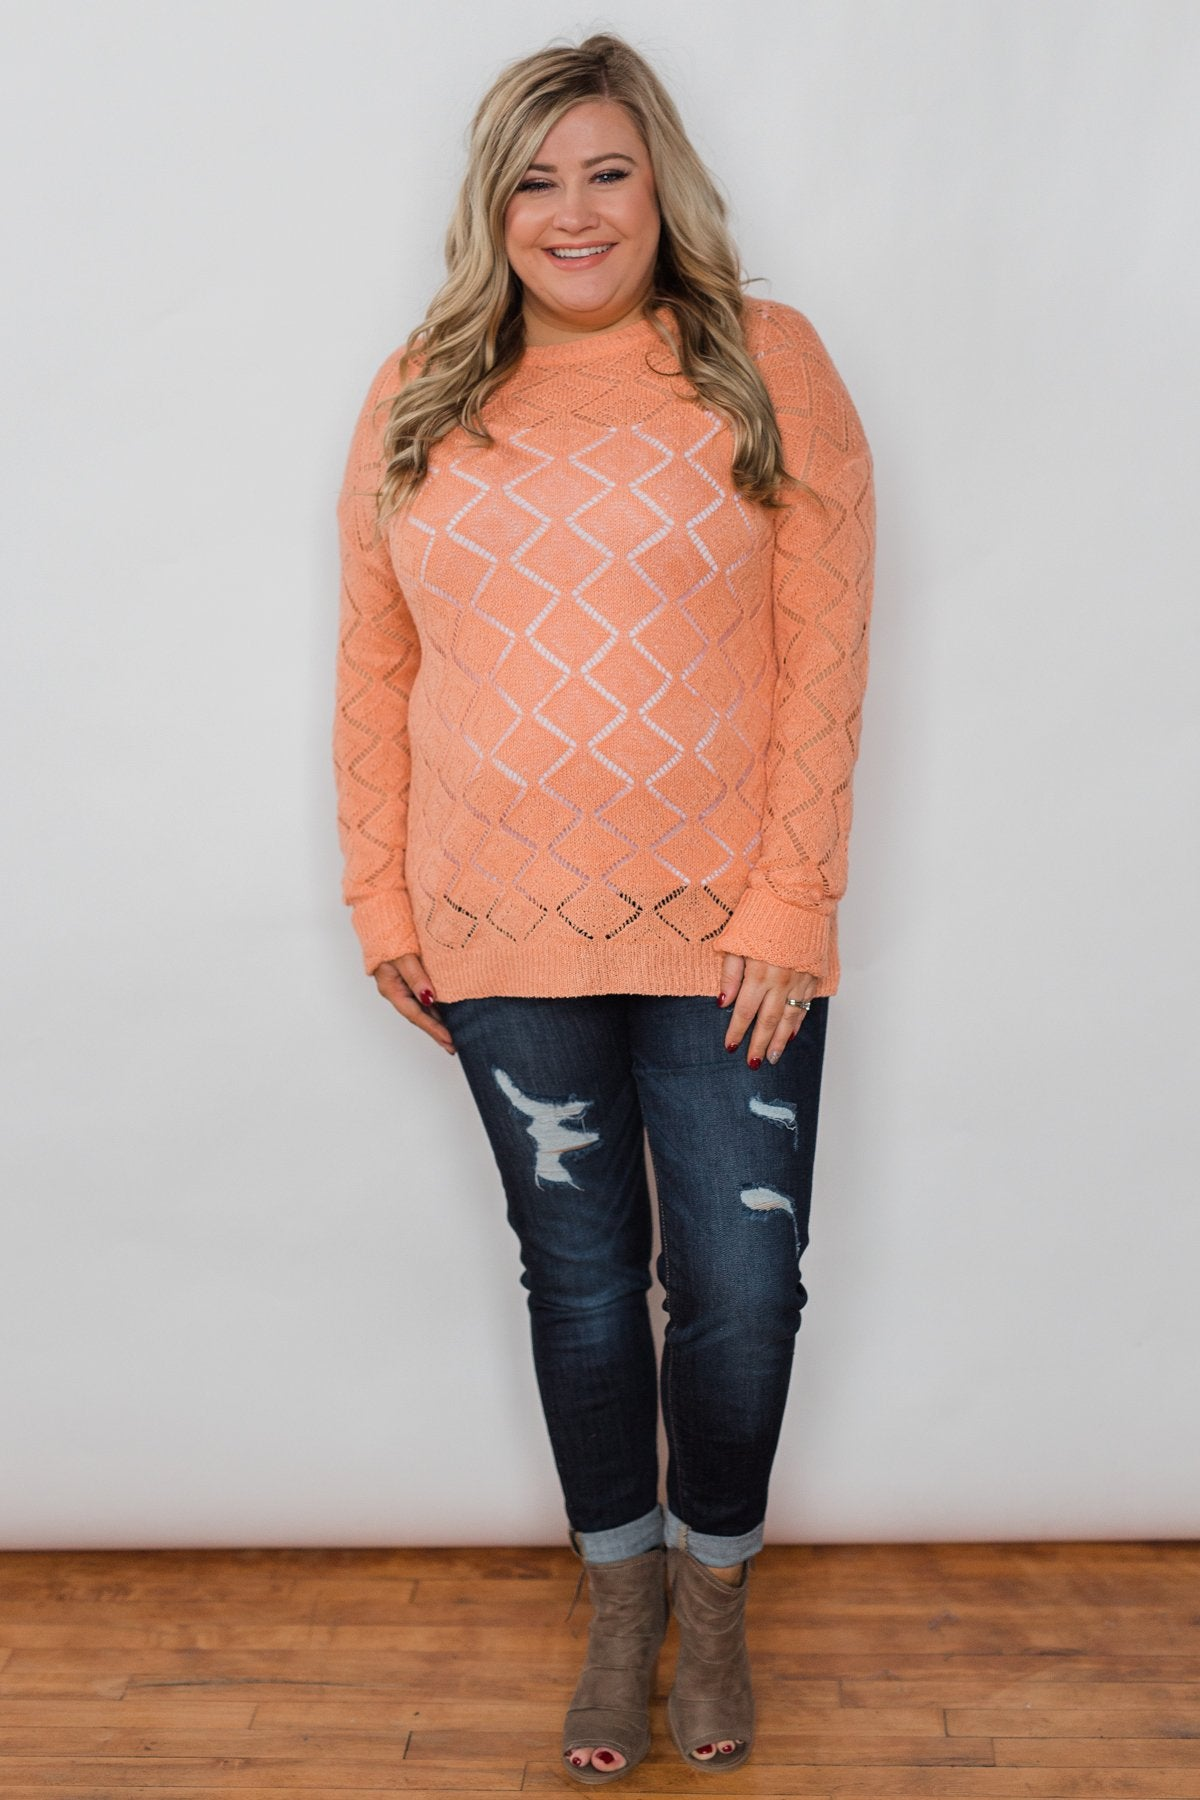 Long Sleeve Pointelle Knitted Sweater- Peachy Orange